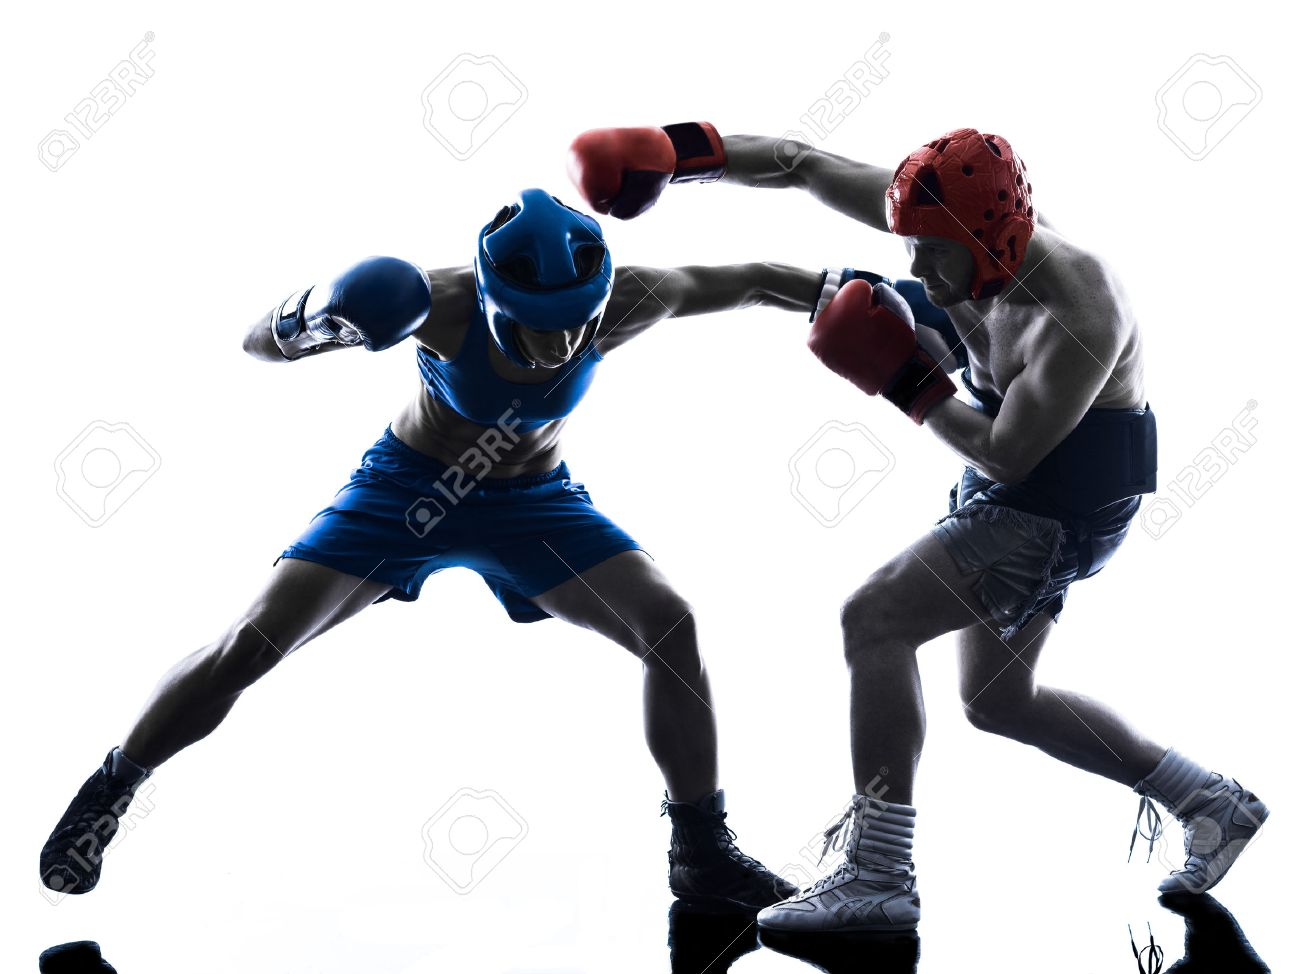 one woman boxer boxing one man kickboxing in silhouette isolated